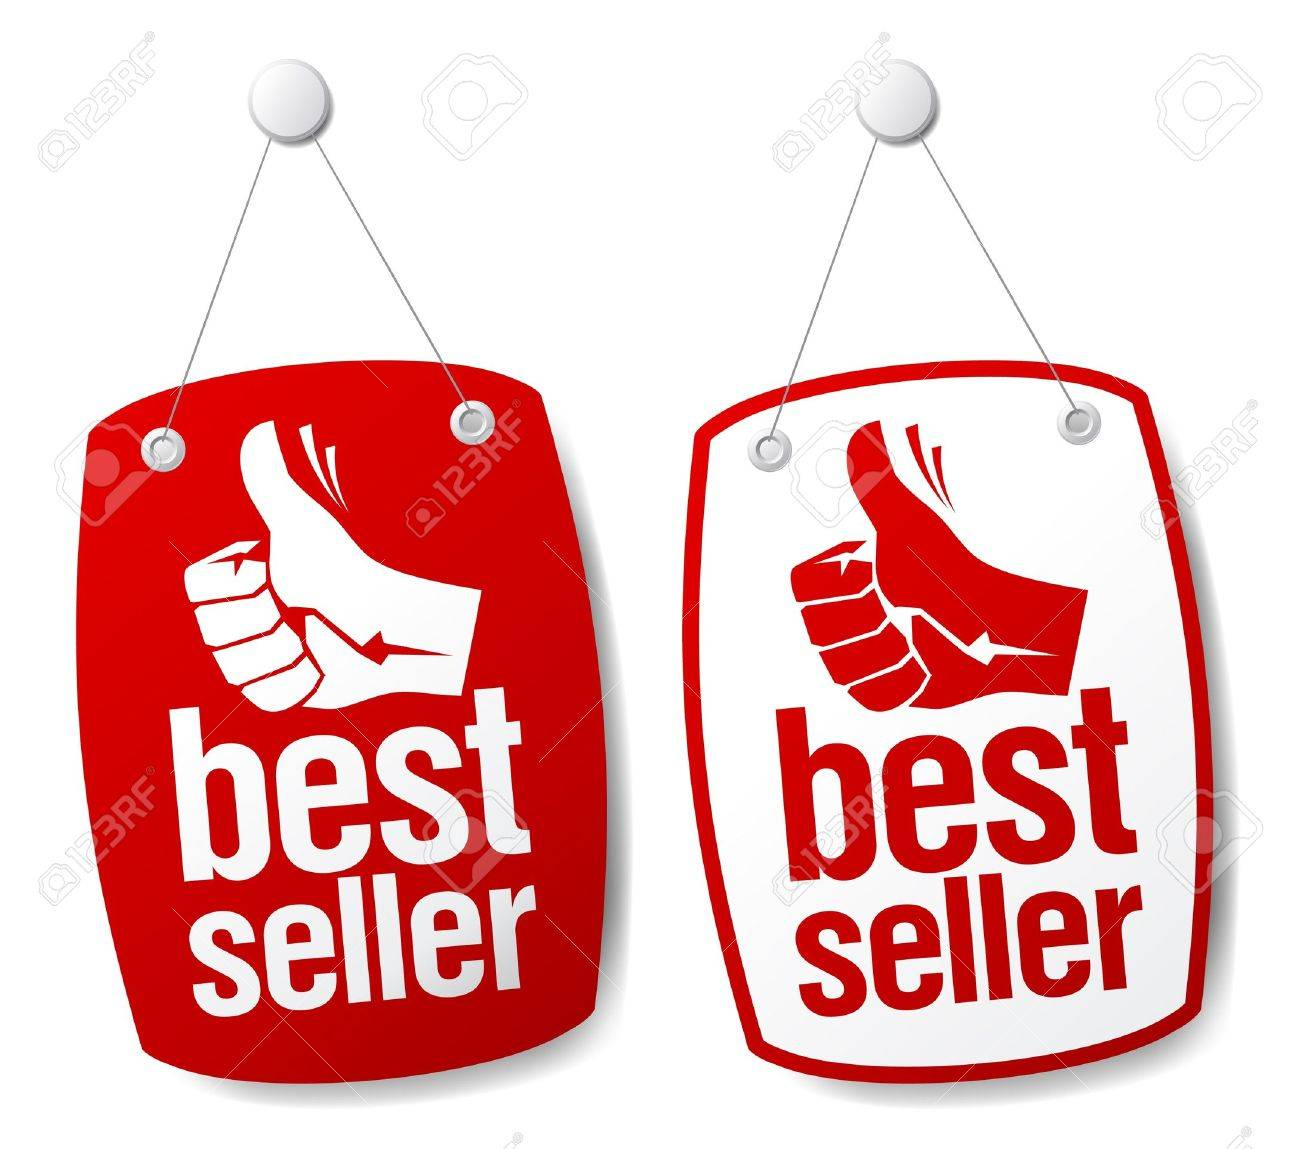 Bestseller signs set. Stock Vector - 9130948